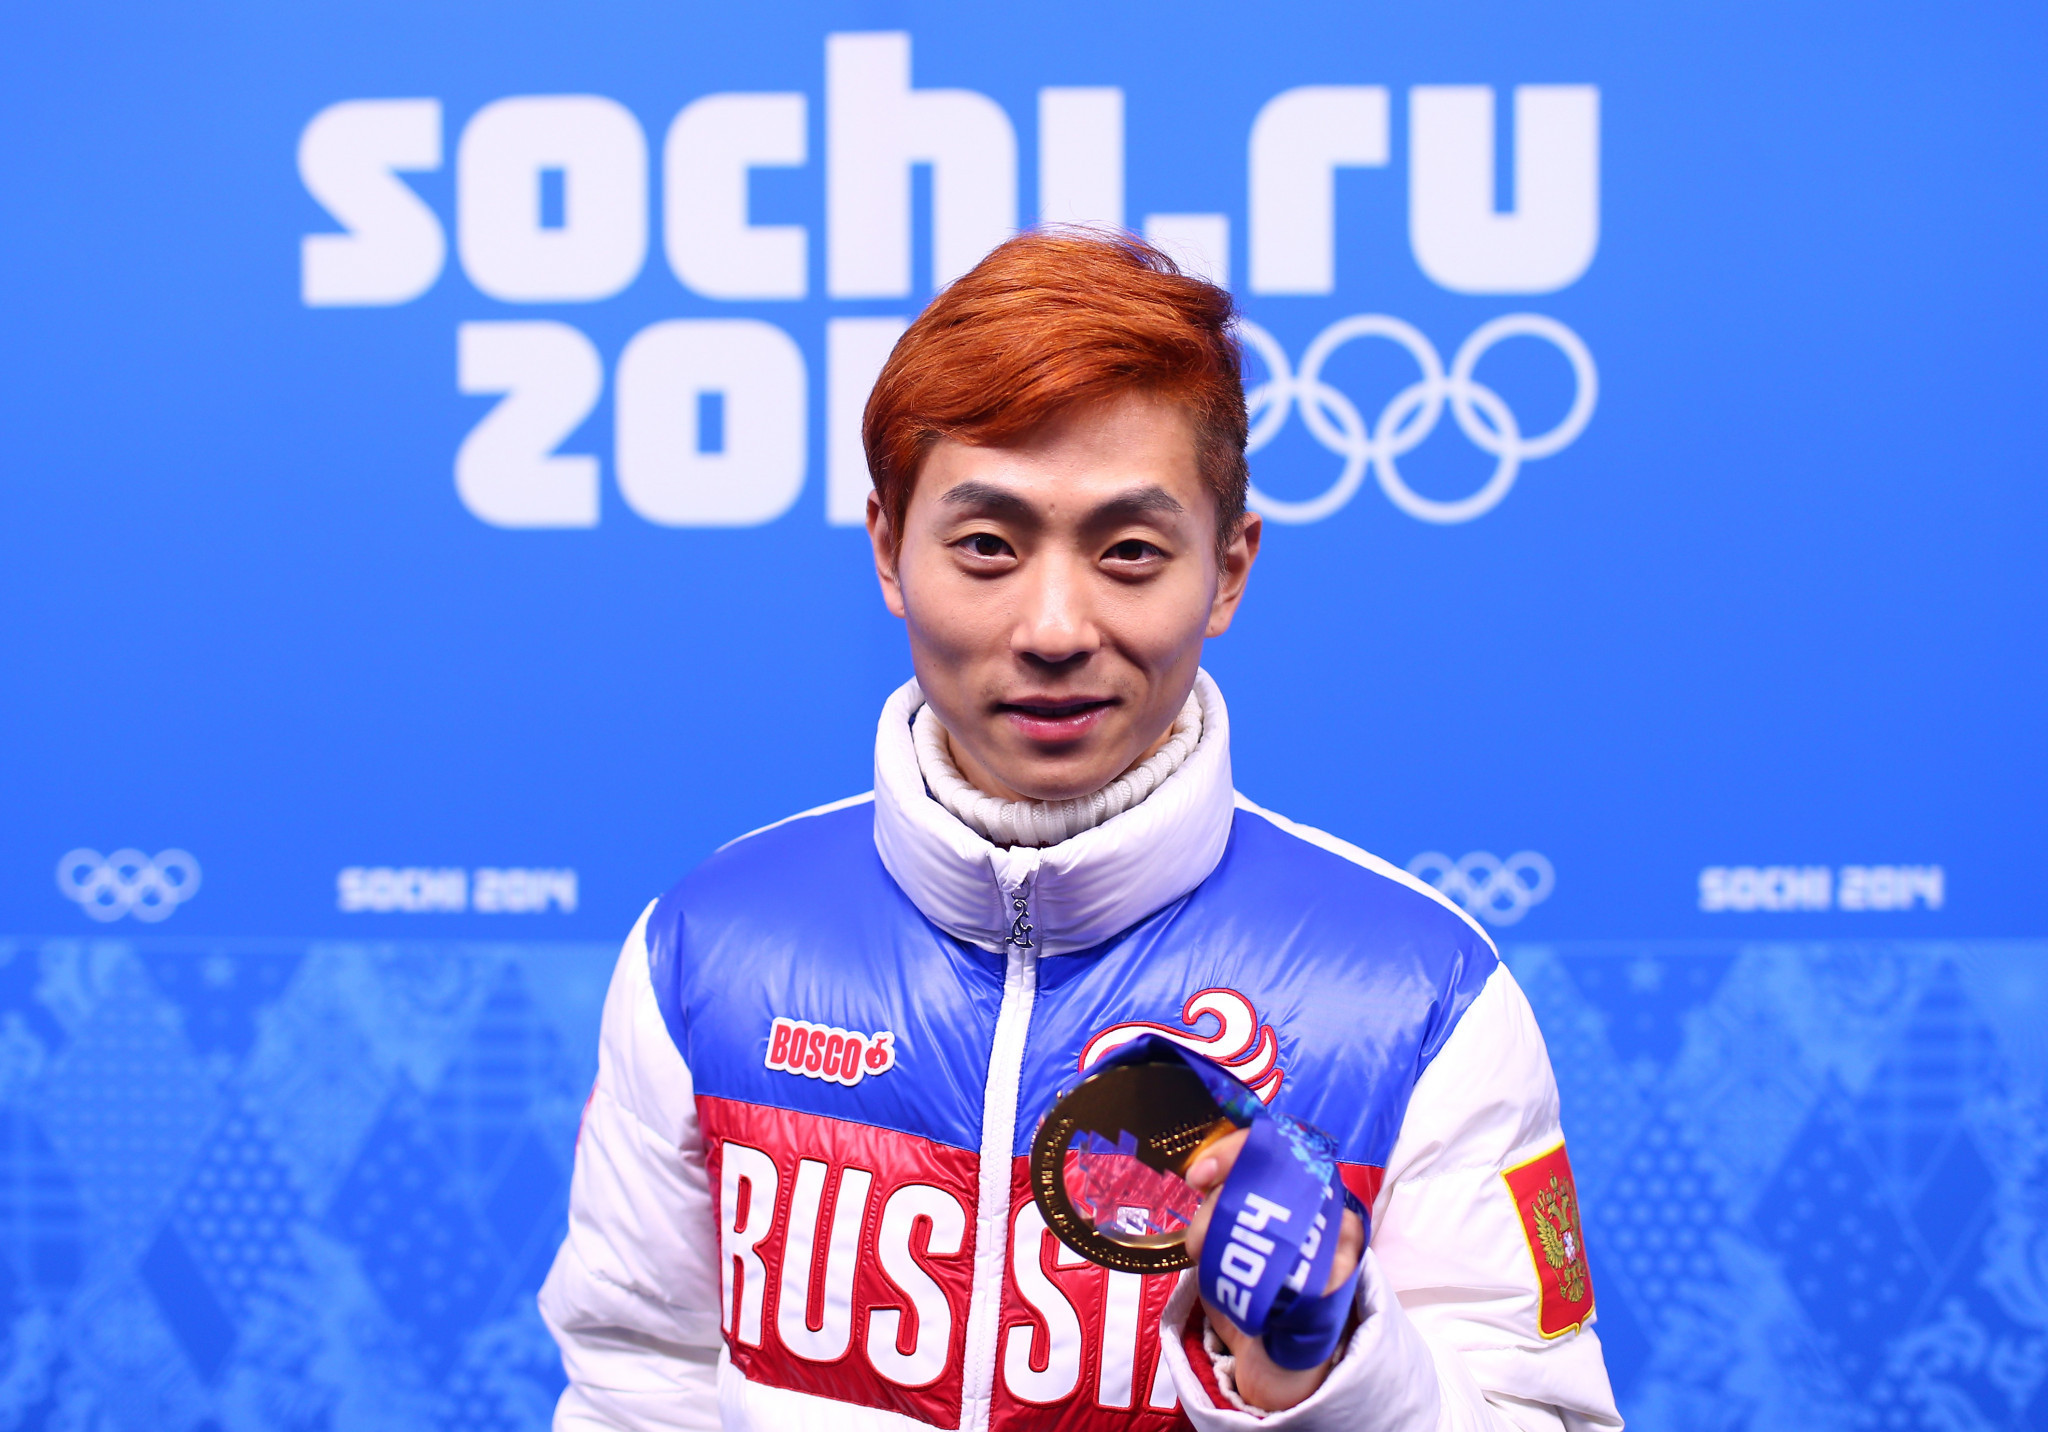 South Korean-born Russian short track speed skater Viktor Ahn is to set come out of retirement in time for Beijing 2022 ©Getty Images